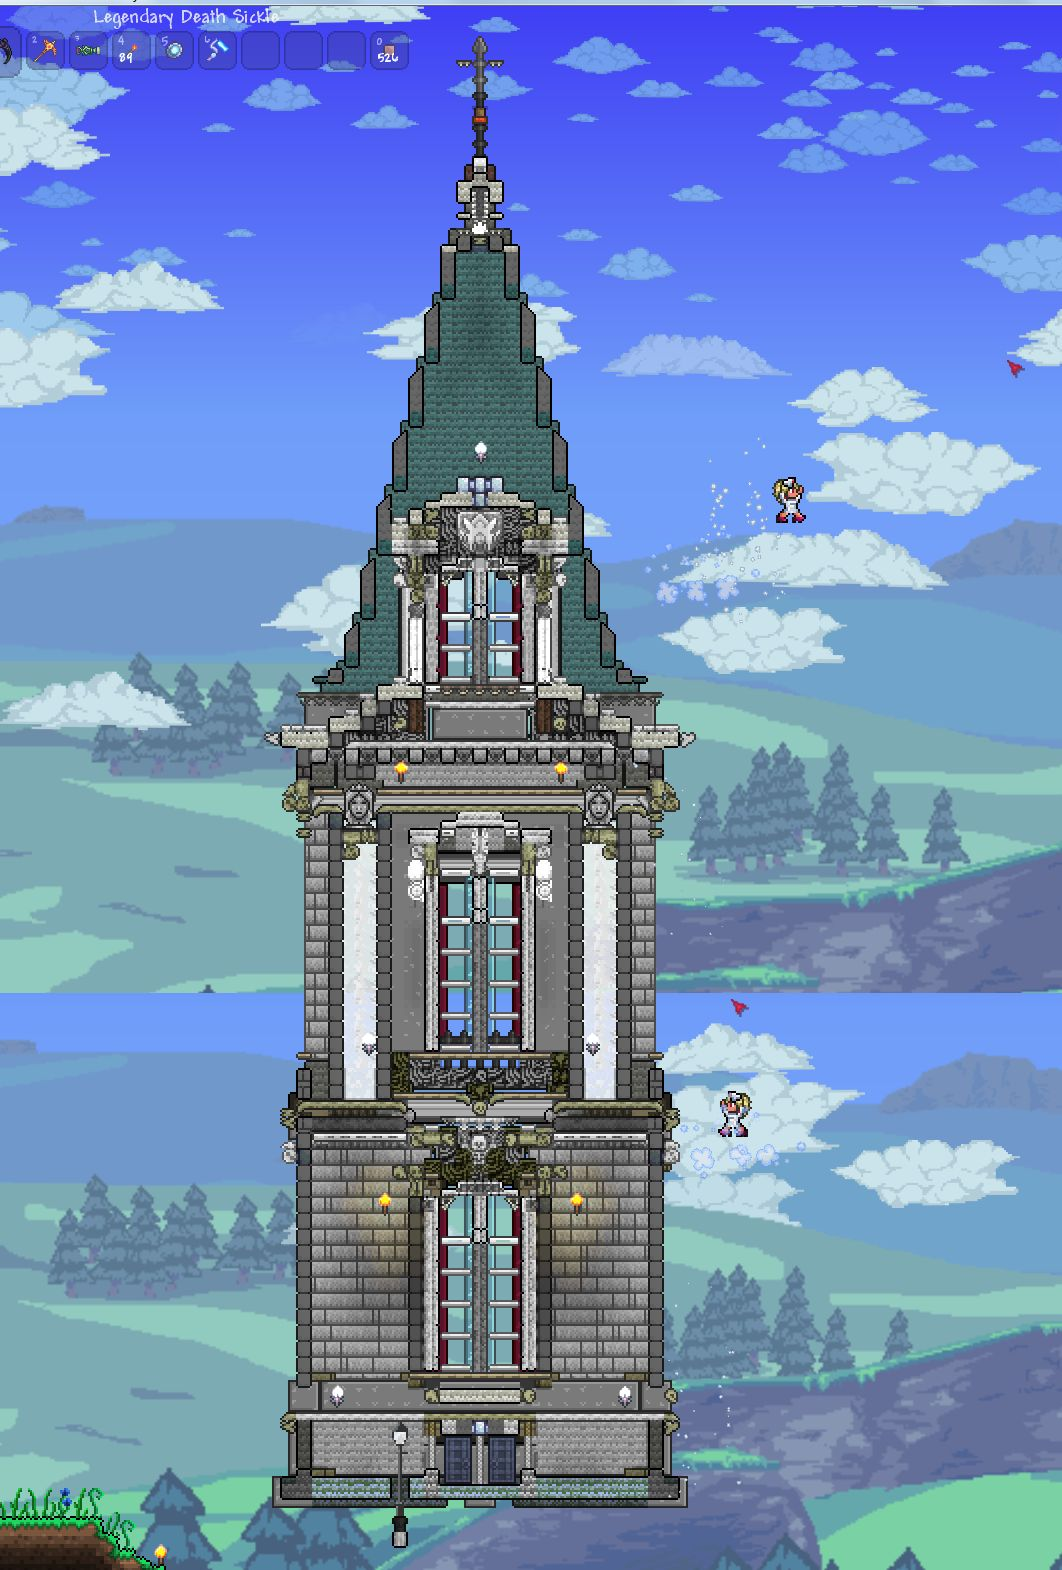 Terraria castle tower castle tower any tips terraria - After A Year Or So Work On And Off My Little Home Is Finished Terraria Gaming And Video Games